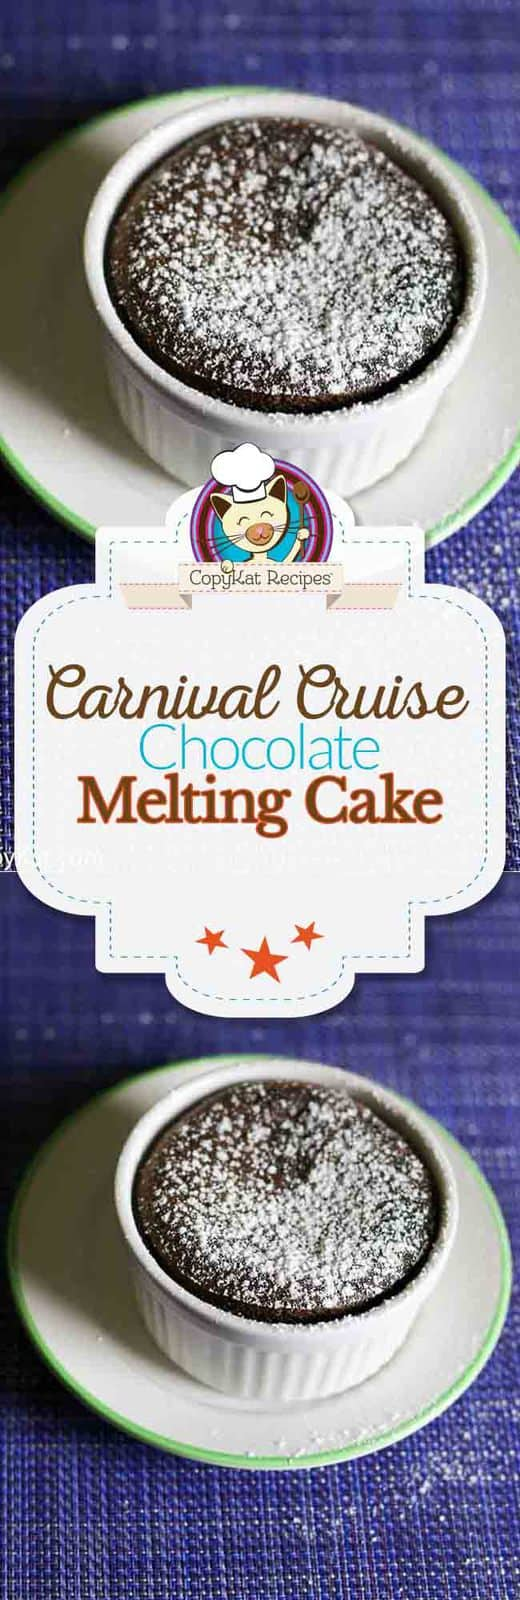 Make Chocolate Melting Cake just like they do on a Carnival Cruise ship with this copycat recipe.